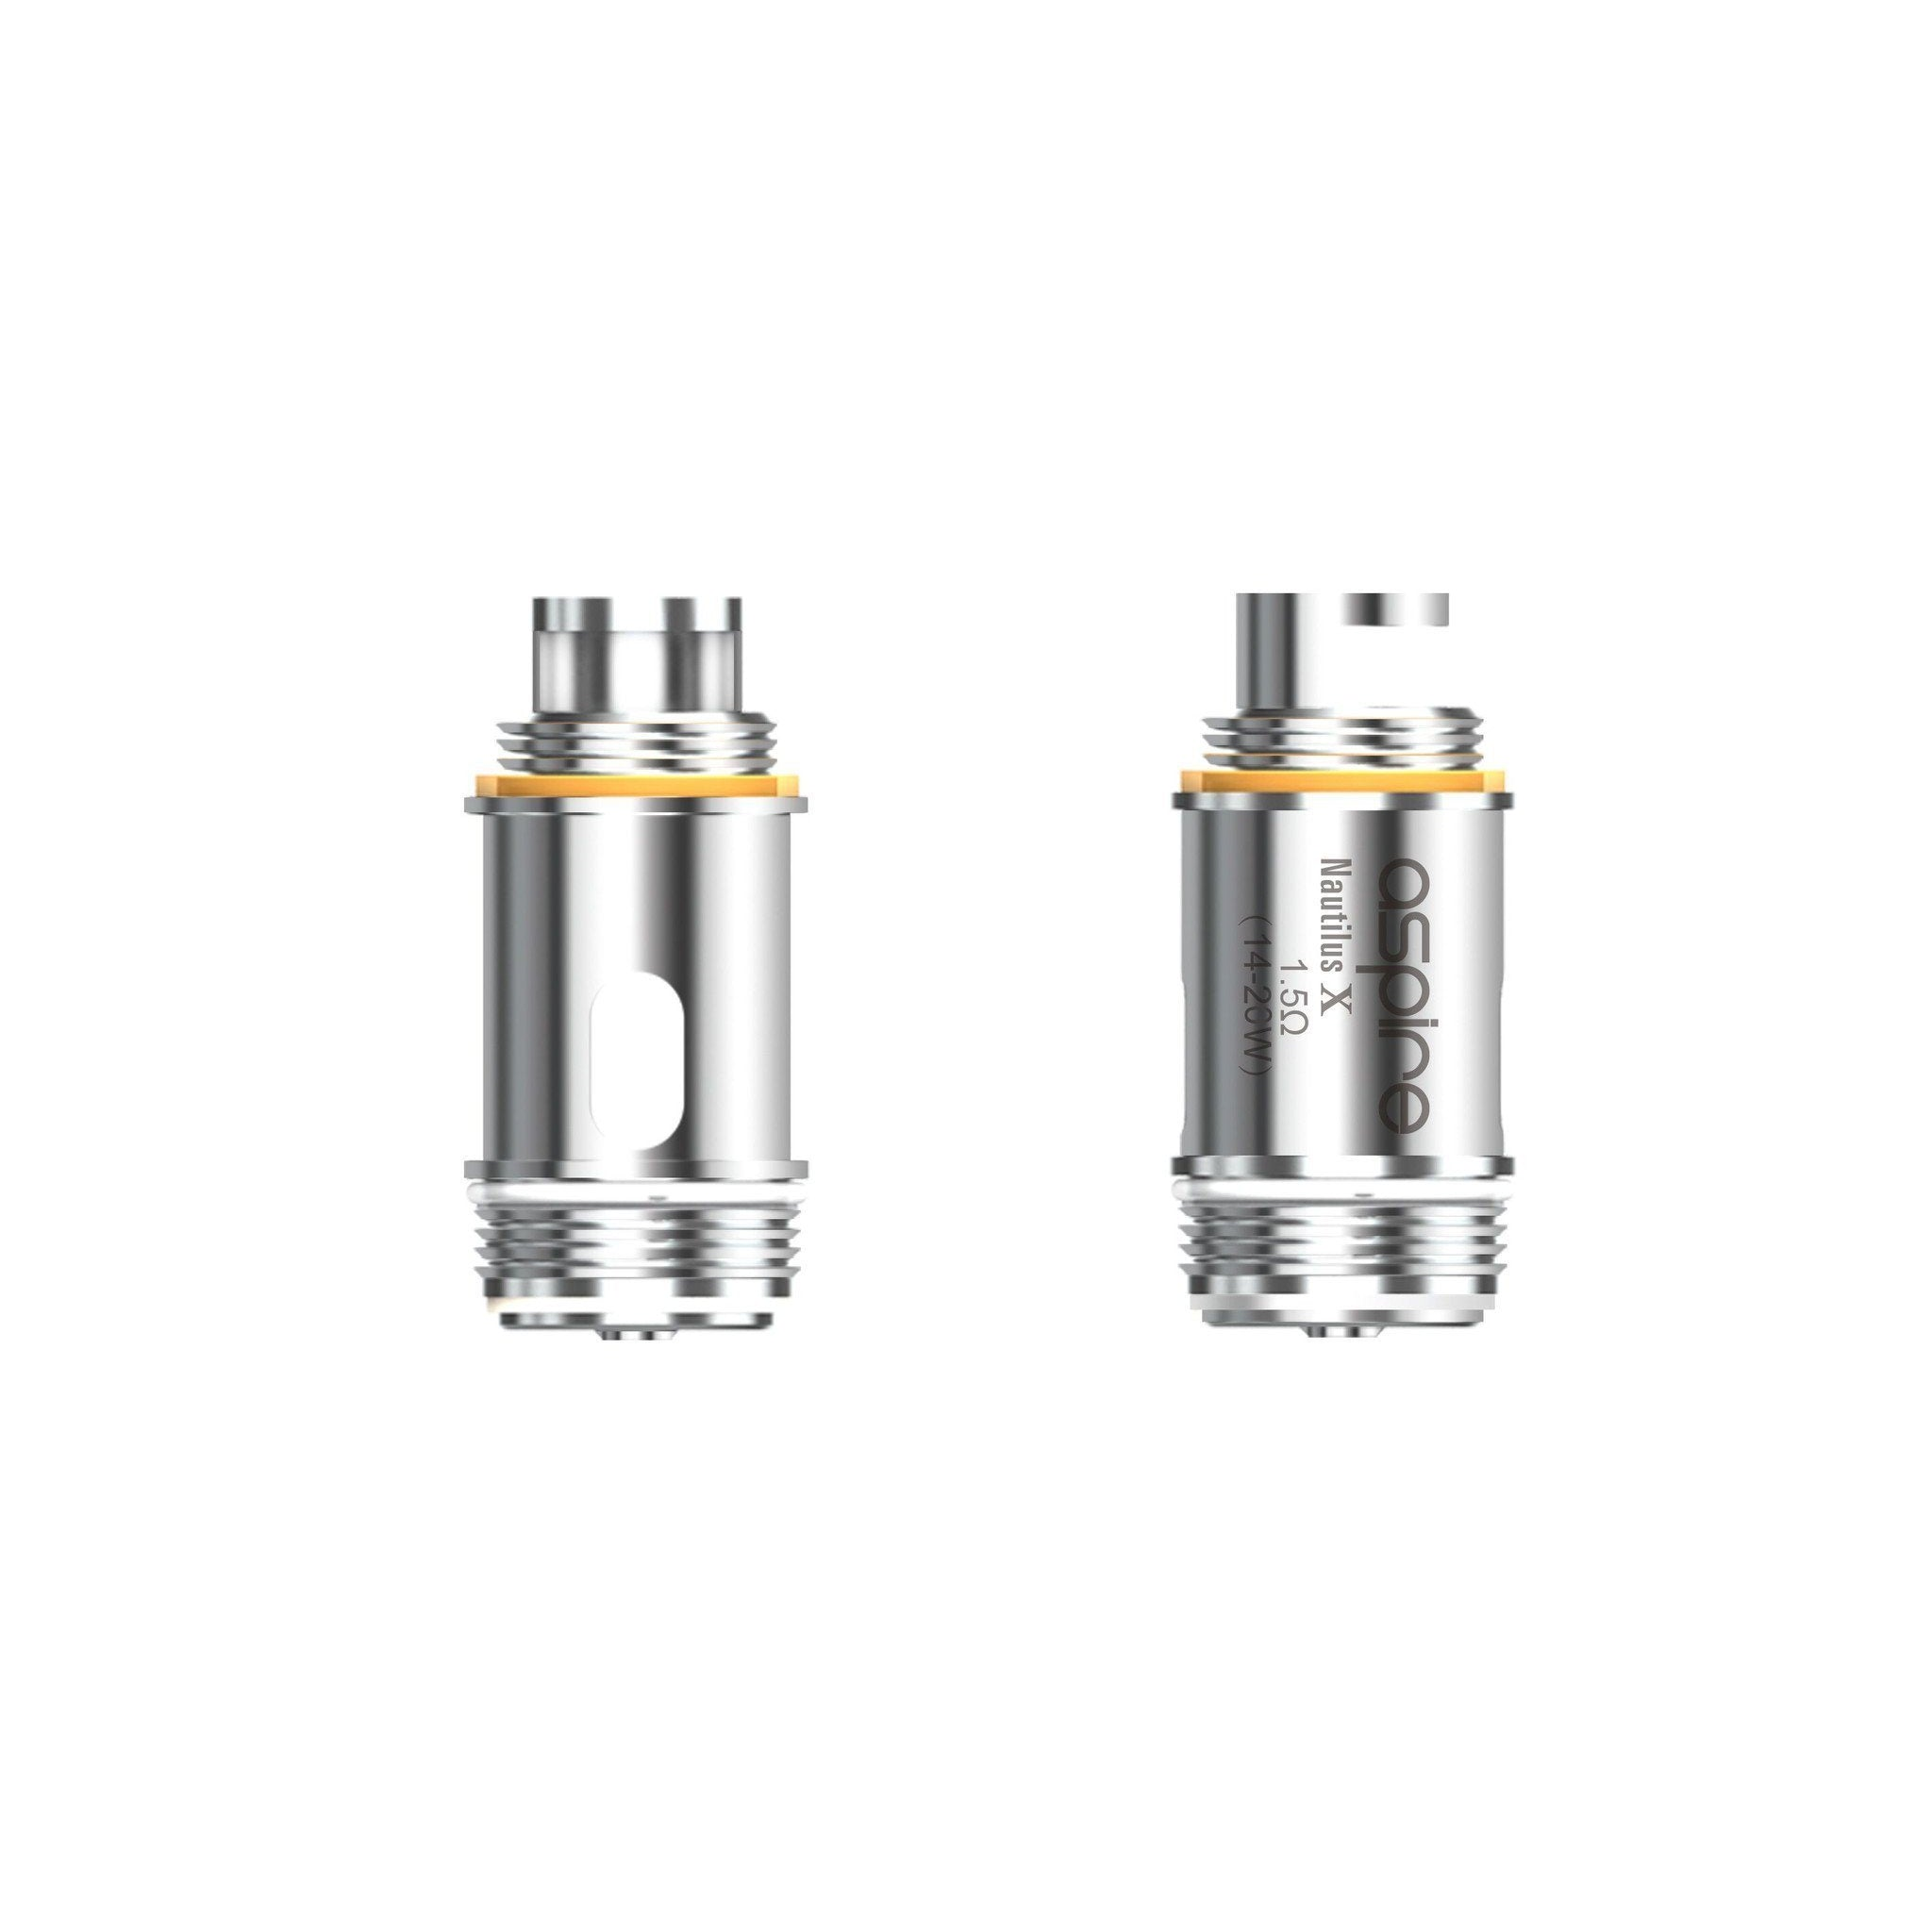 Aspire Nautilus X Coils - 5pk - Evaperated